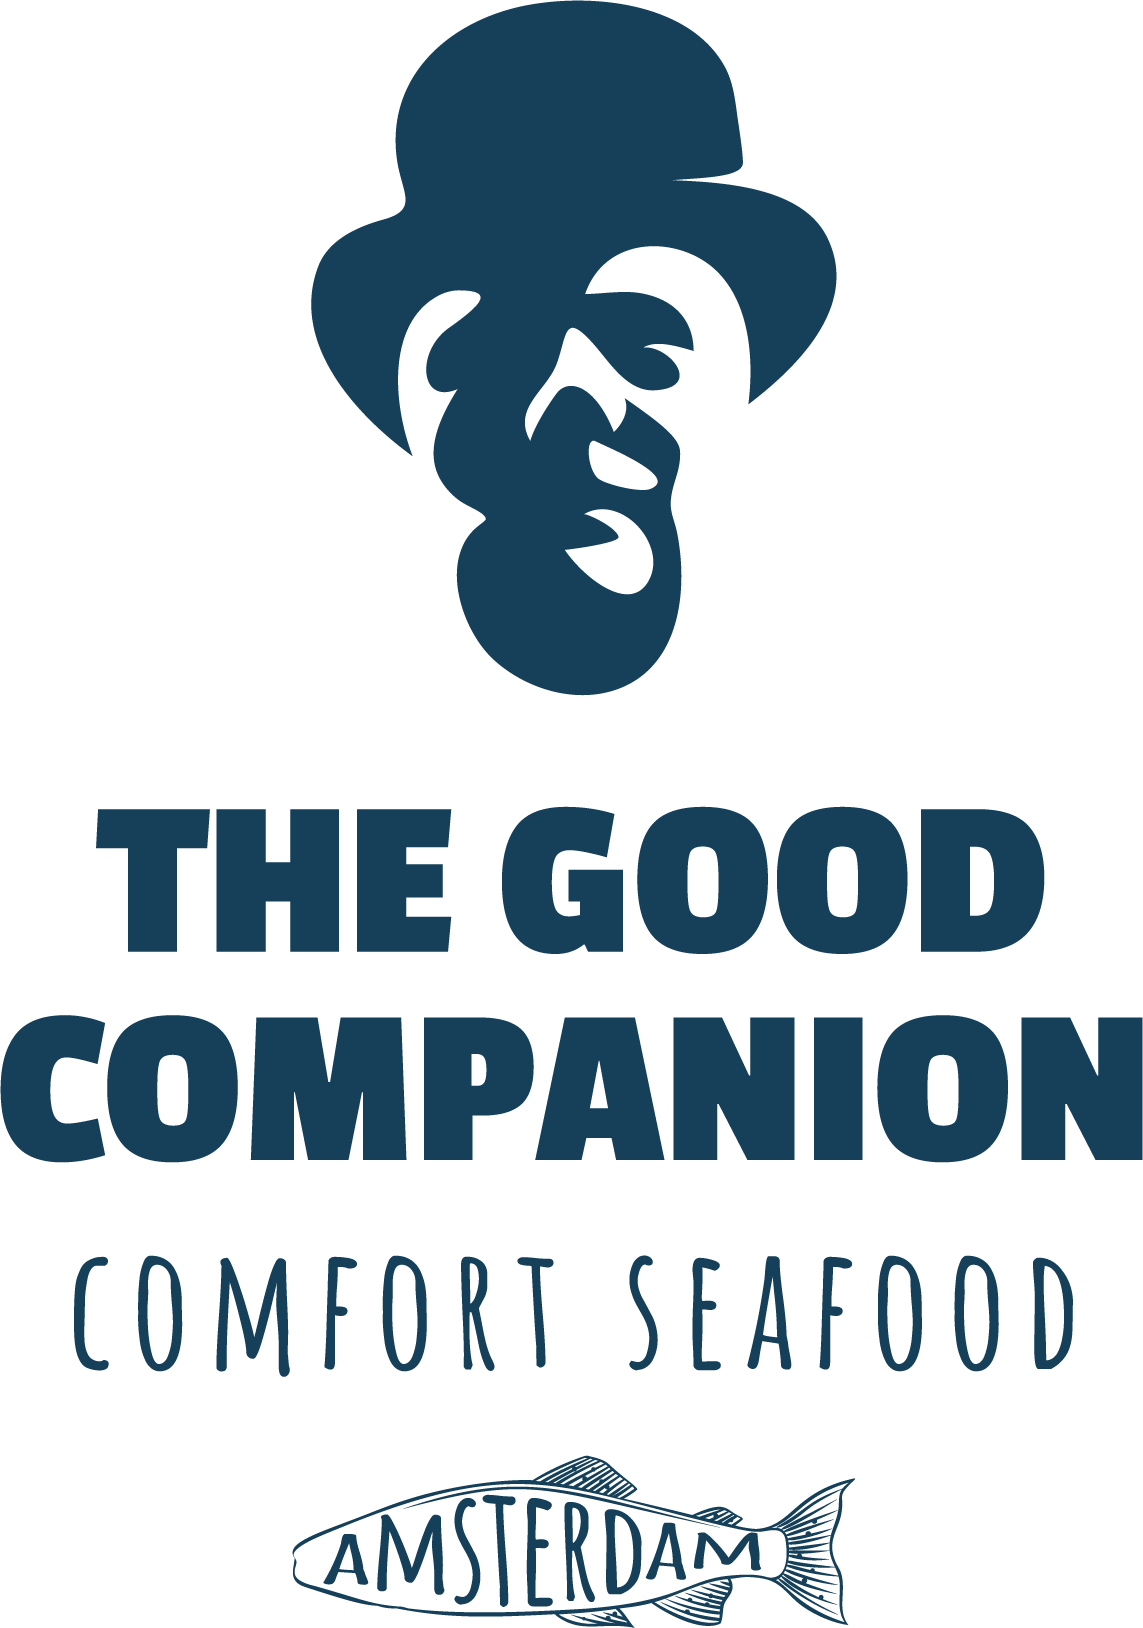 The Good Companion - comfort seafood